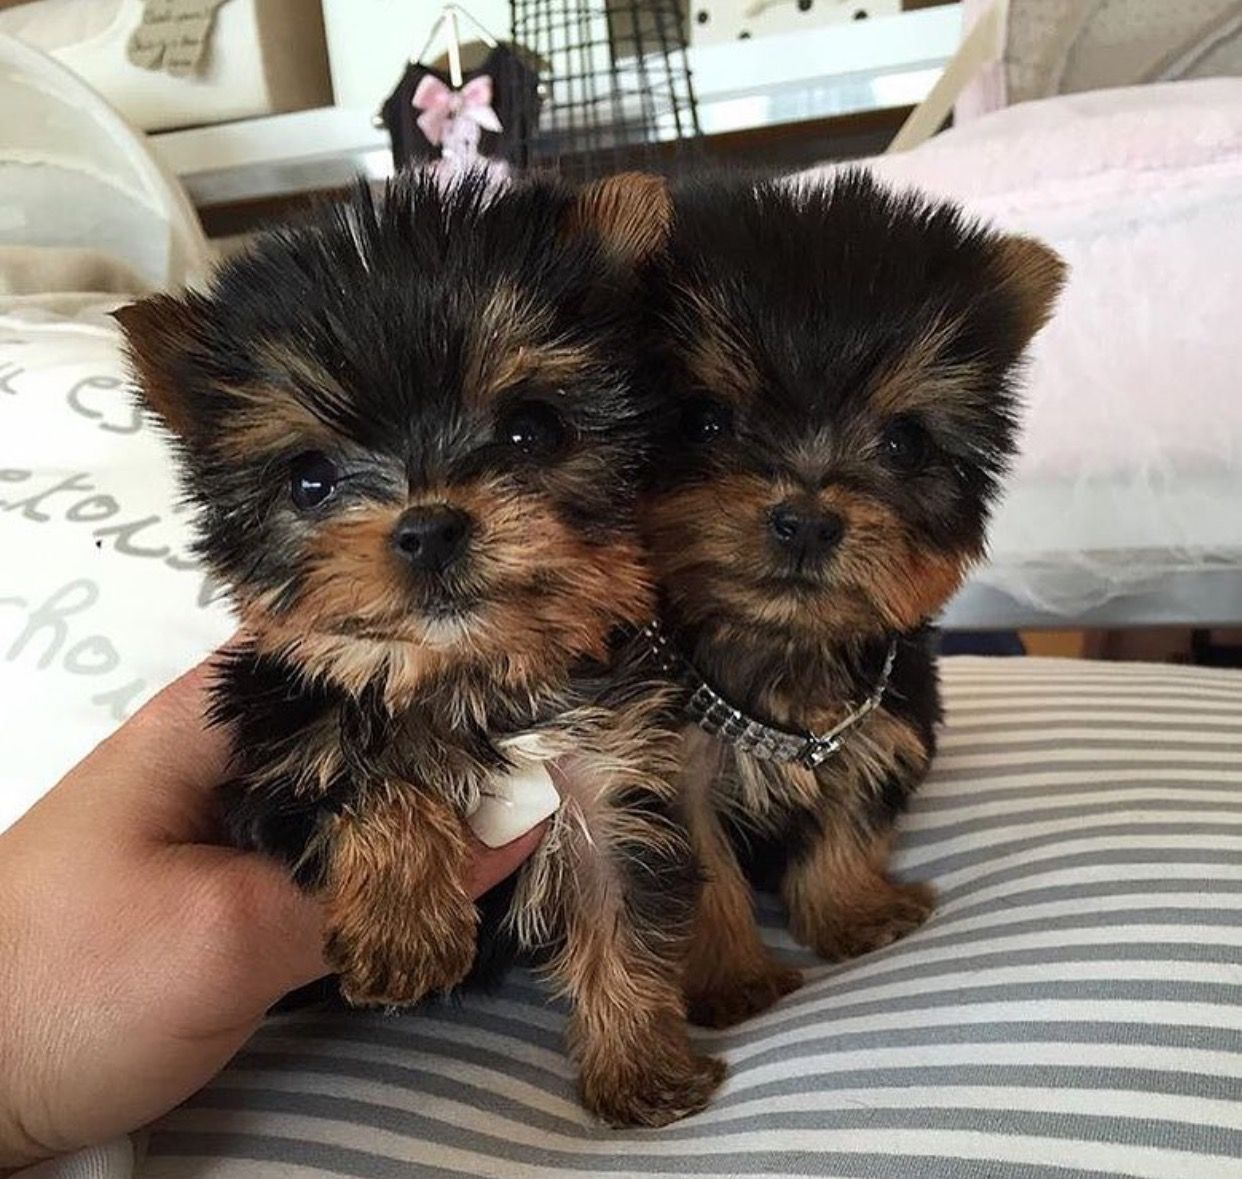 Pin by milly4bri on PETS Yorkie puppy, Teacup yorkie, Yorkie